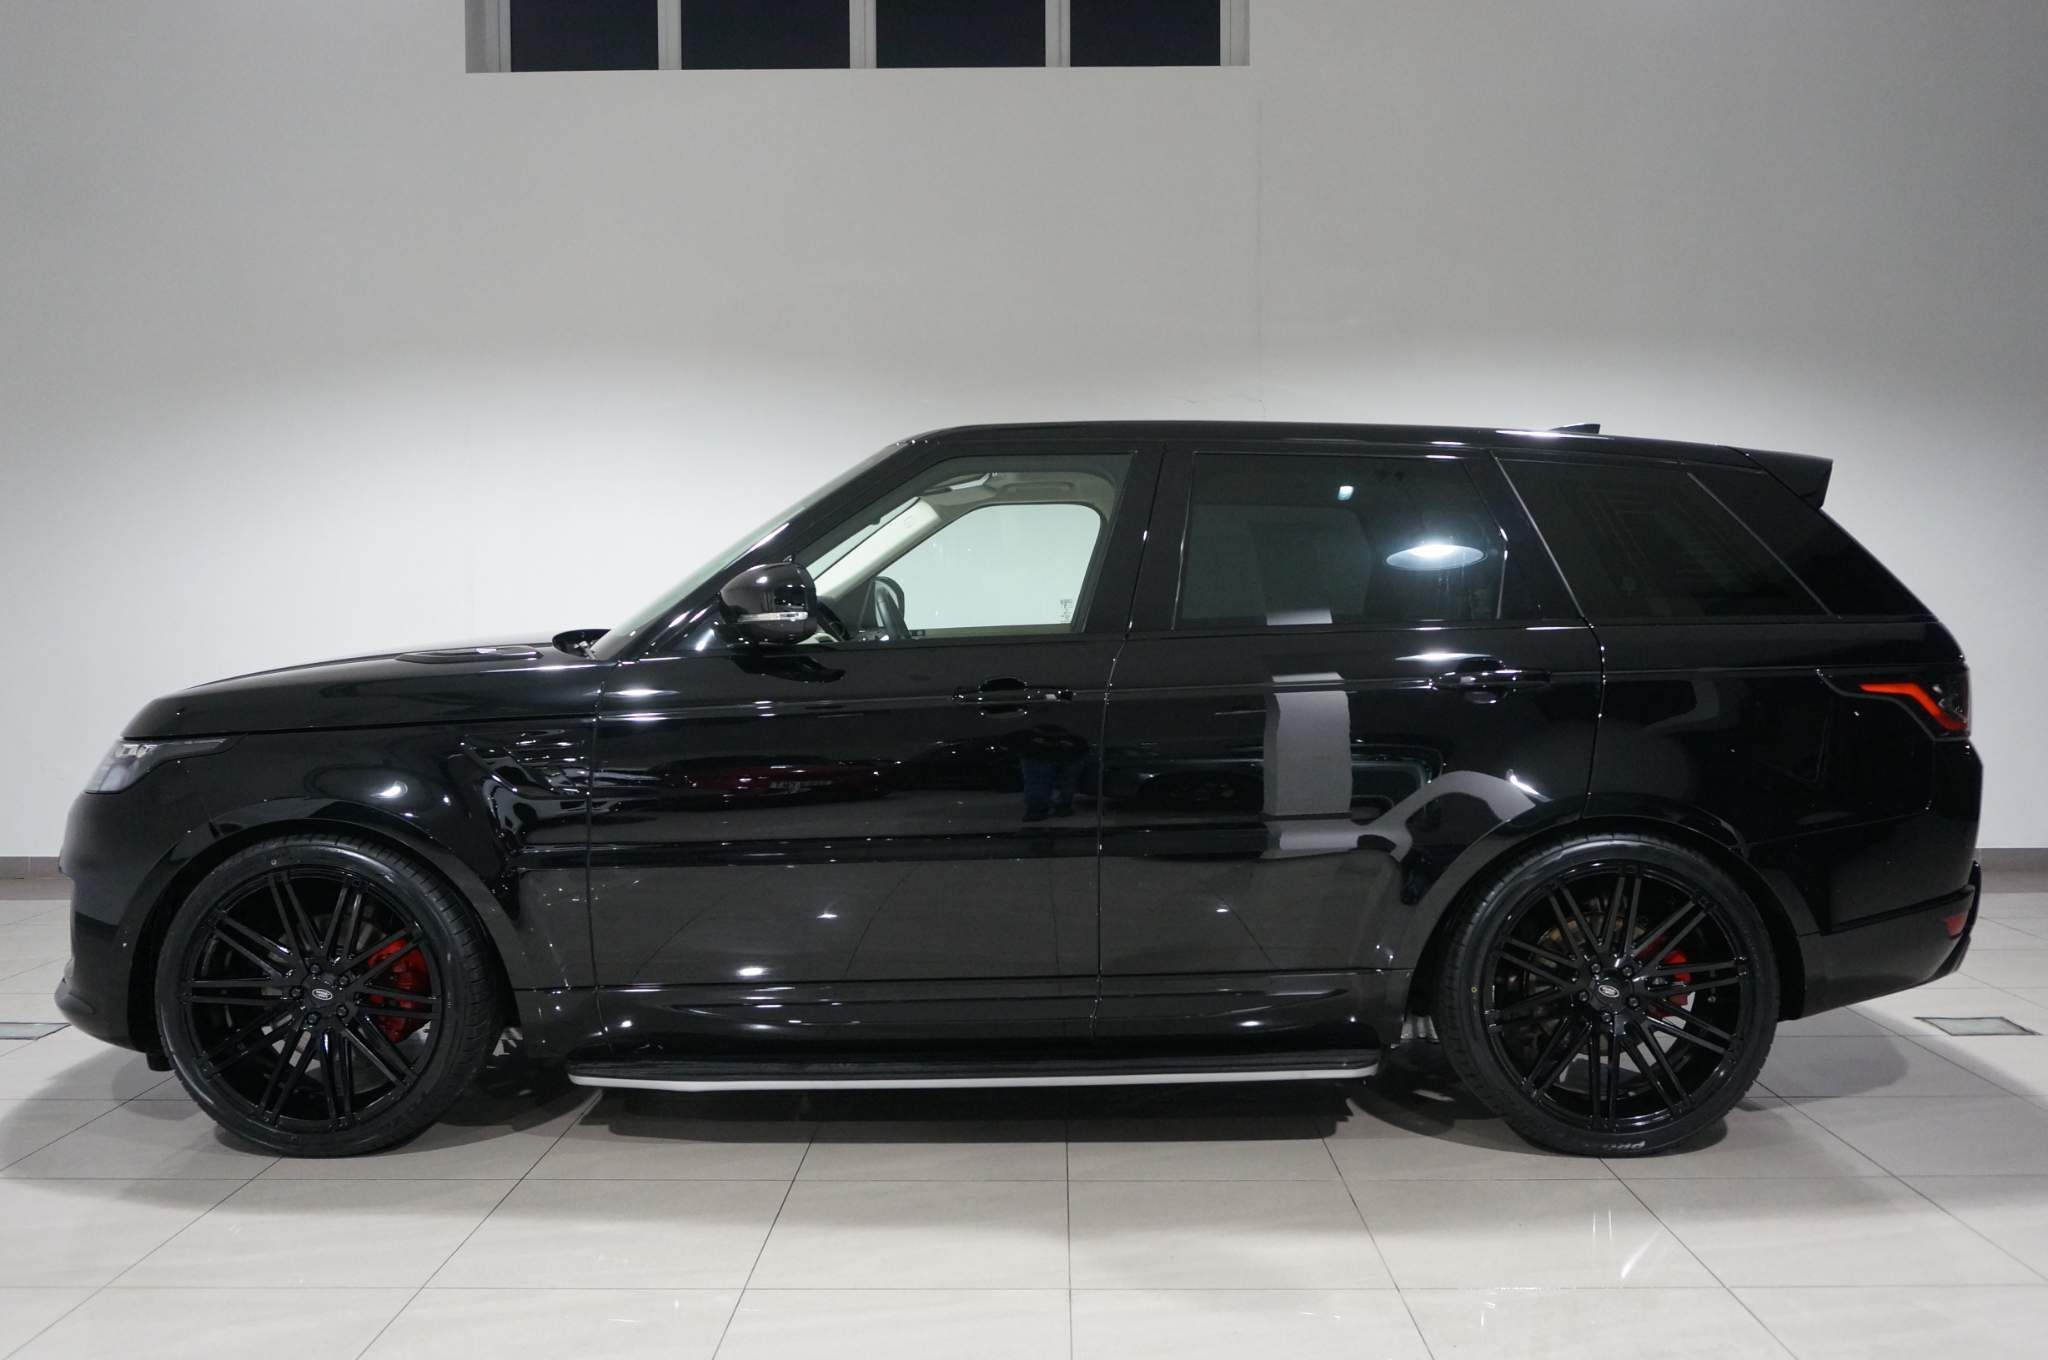 Land Rover Range Rover Sport 3.0 D300 MHEV HSE Silver Auto 4WD (s/s) 5dr